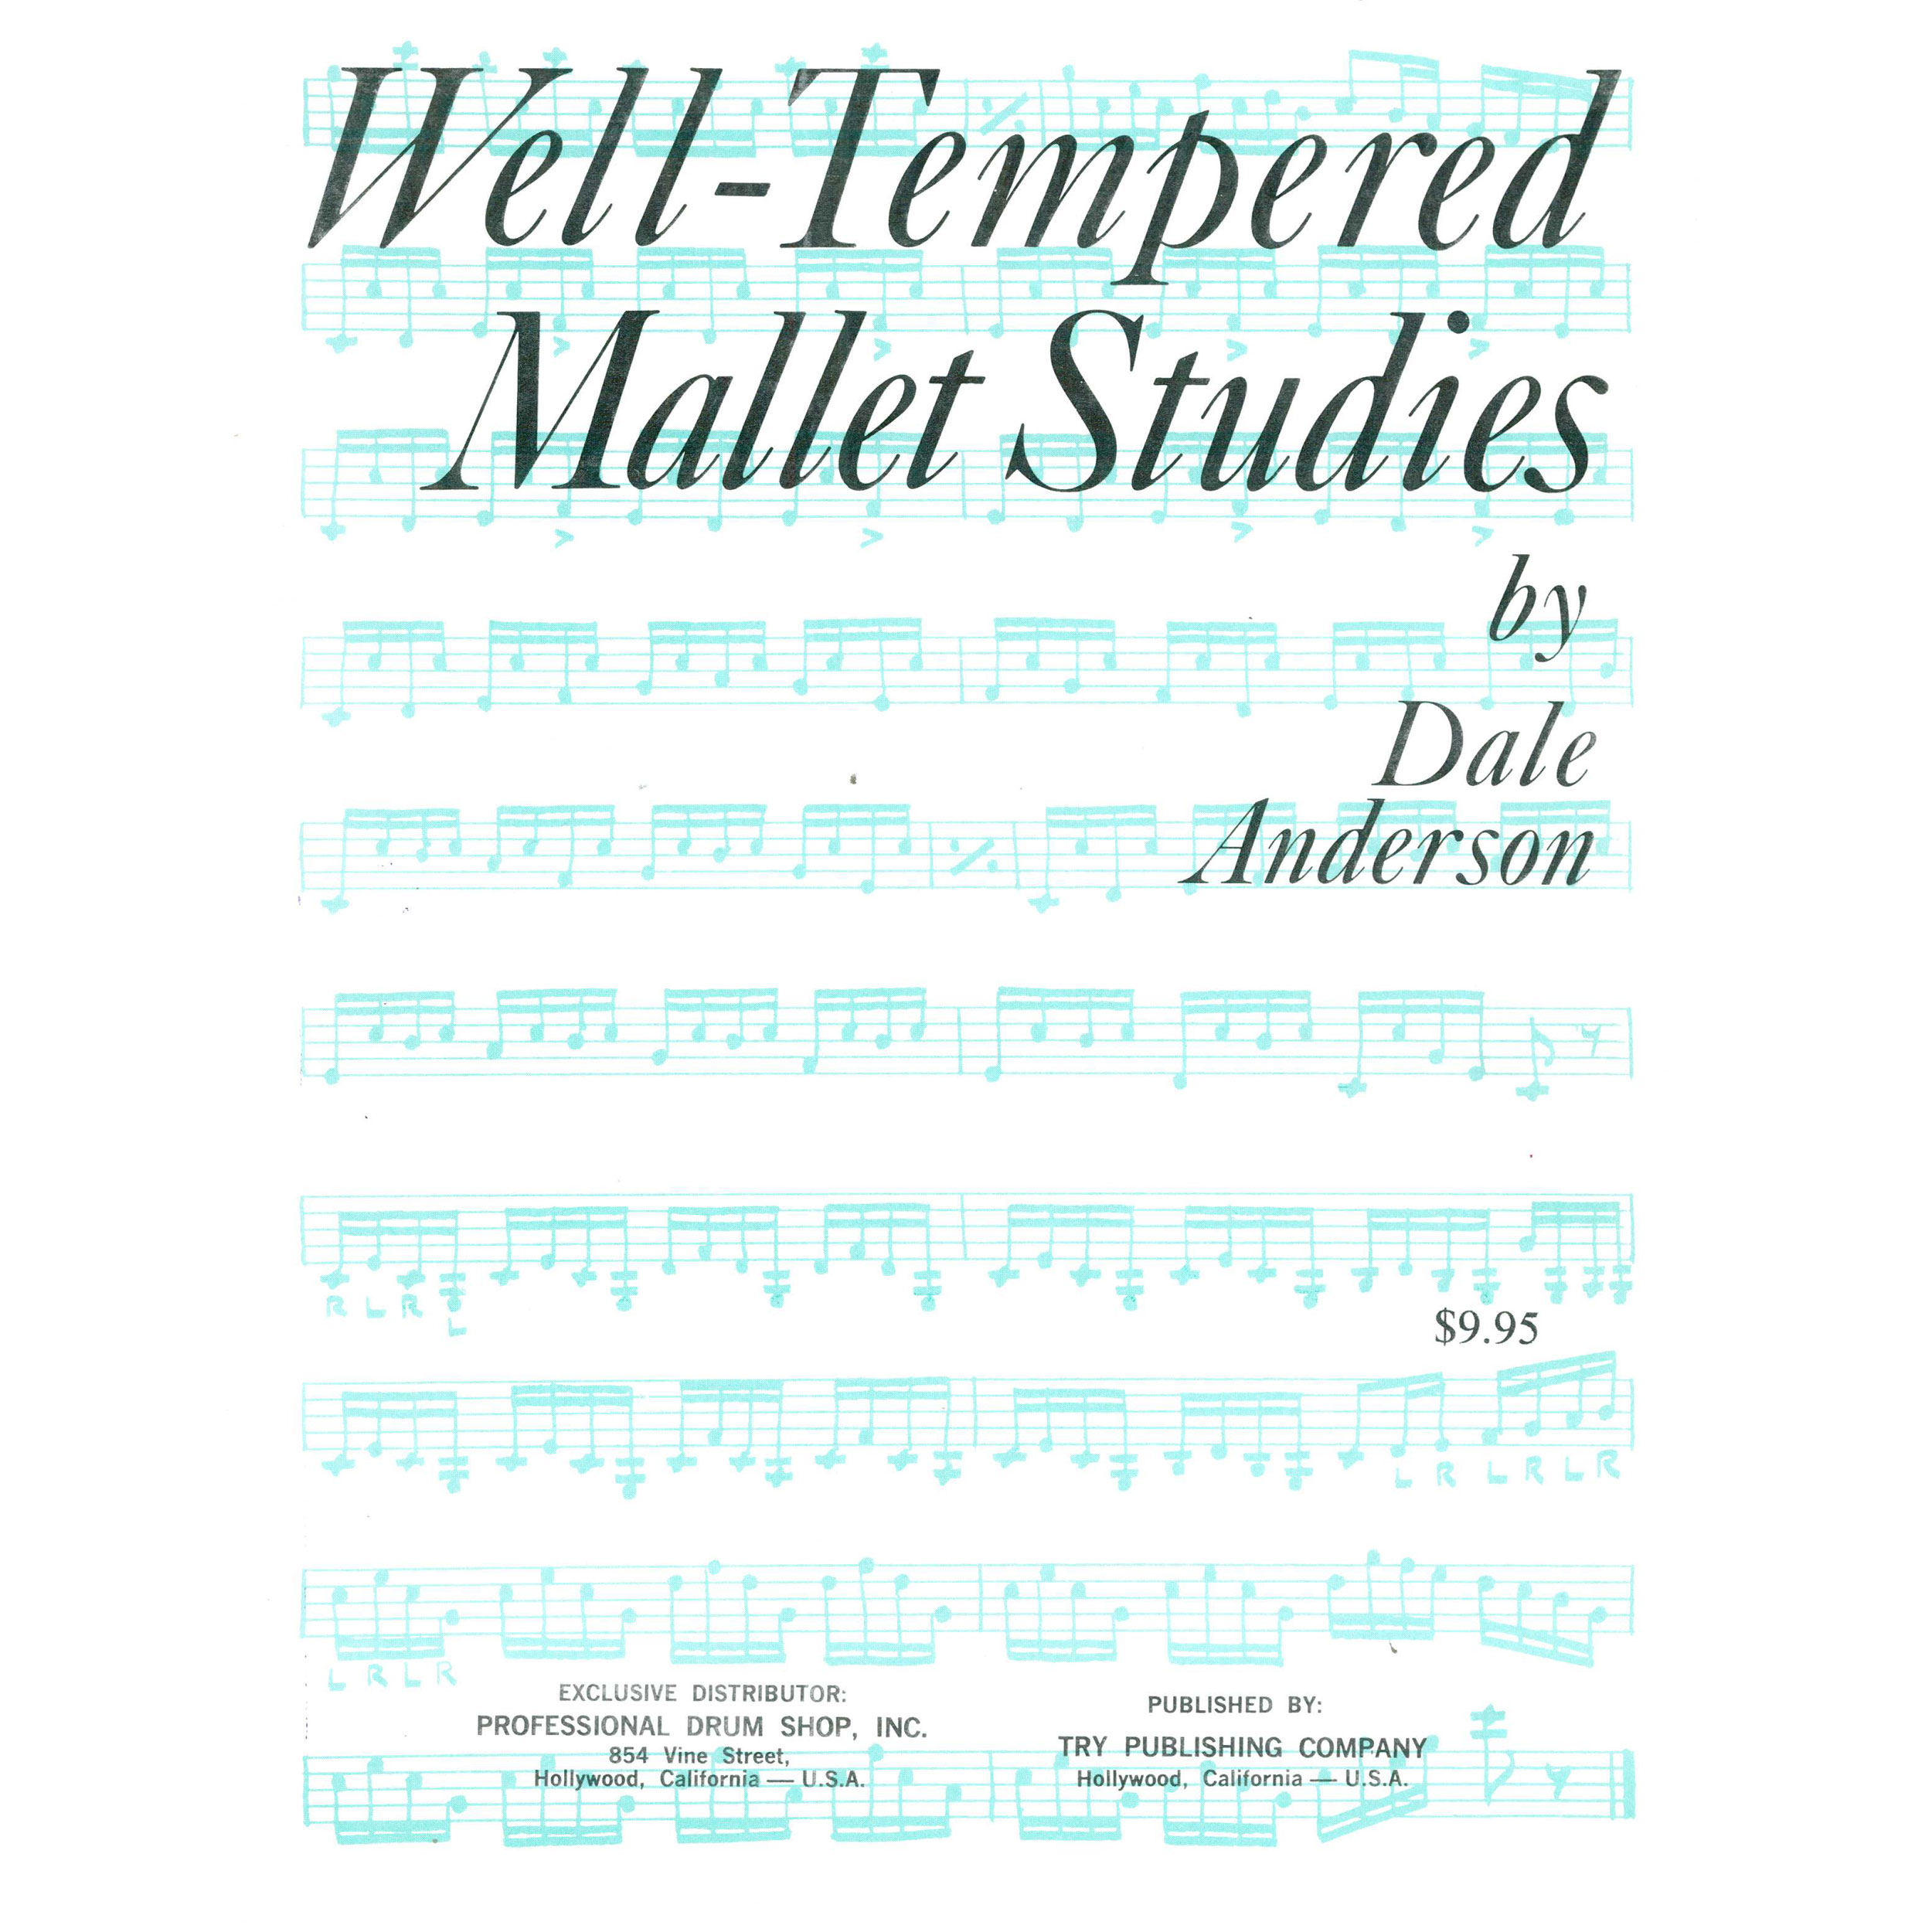 Well-Tempered Mallet Studies by Dale Anderson